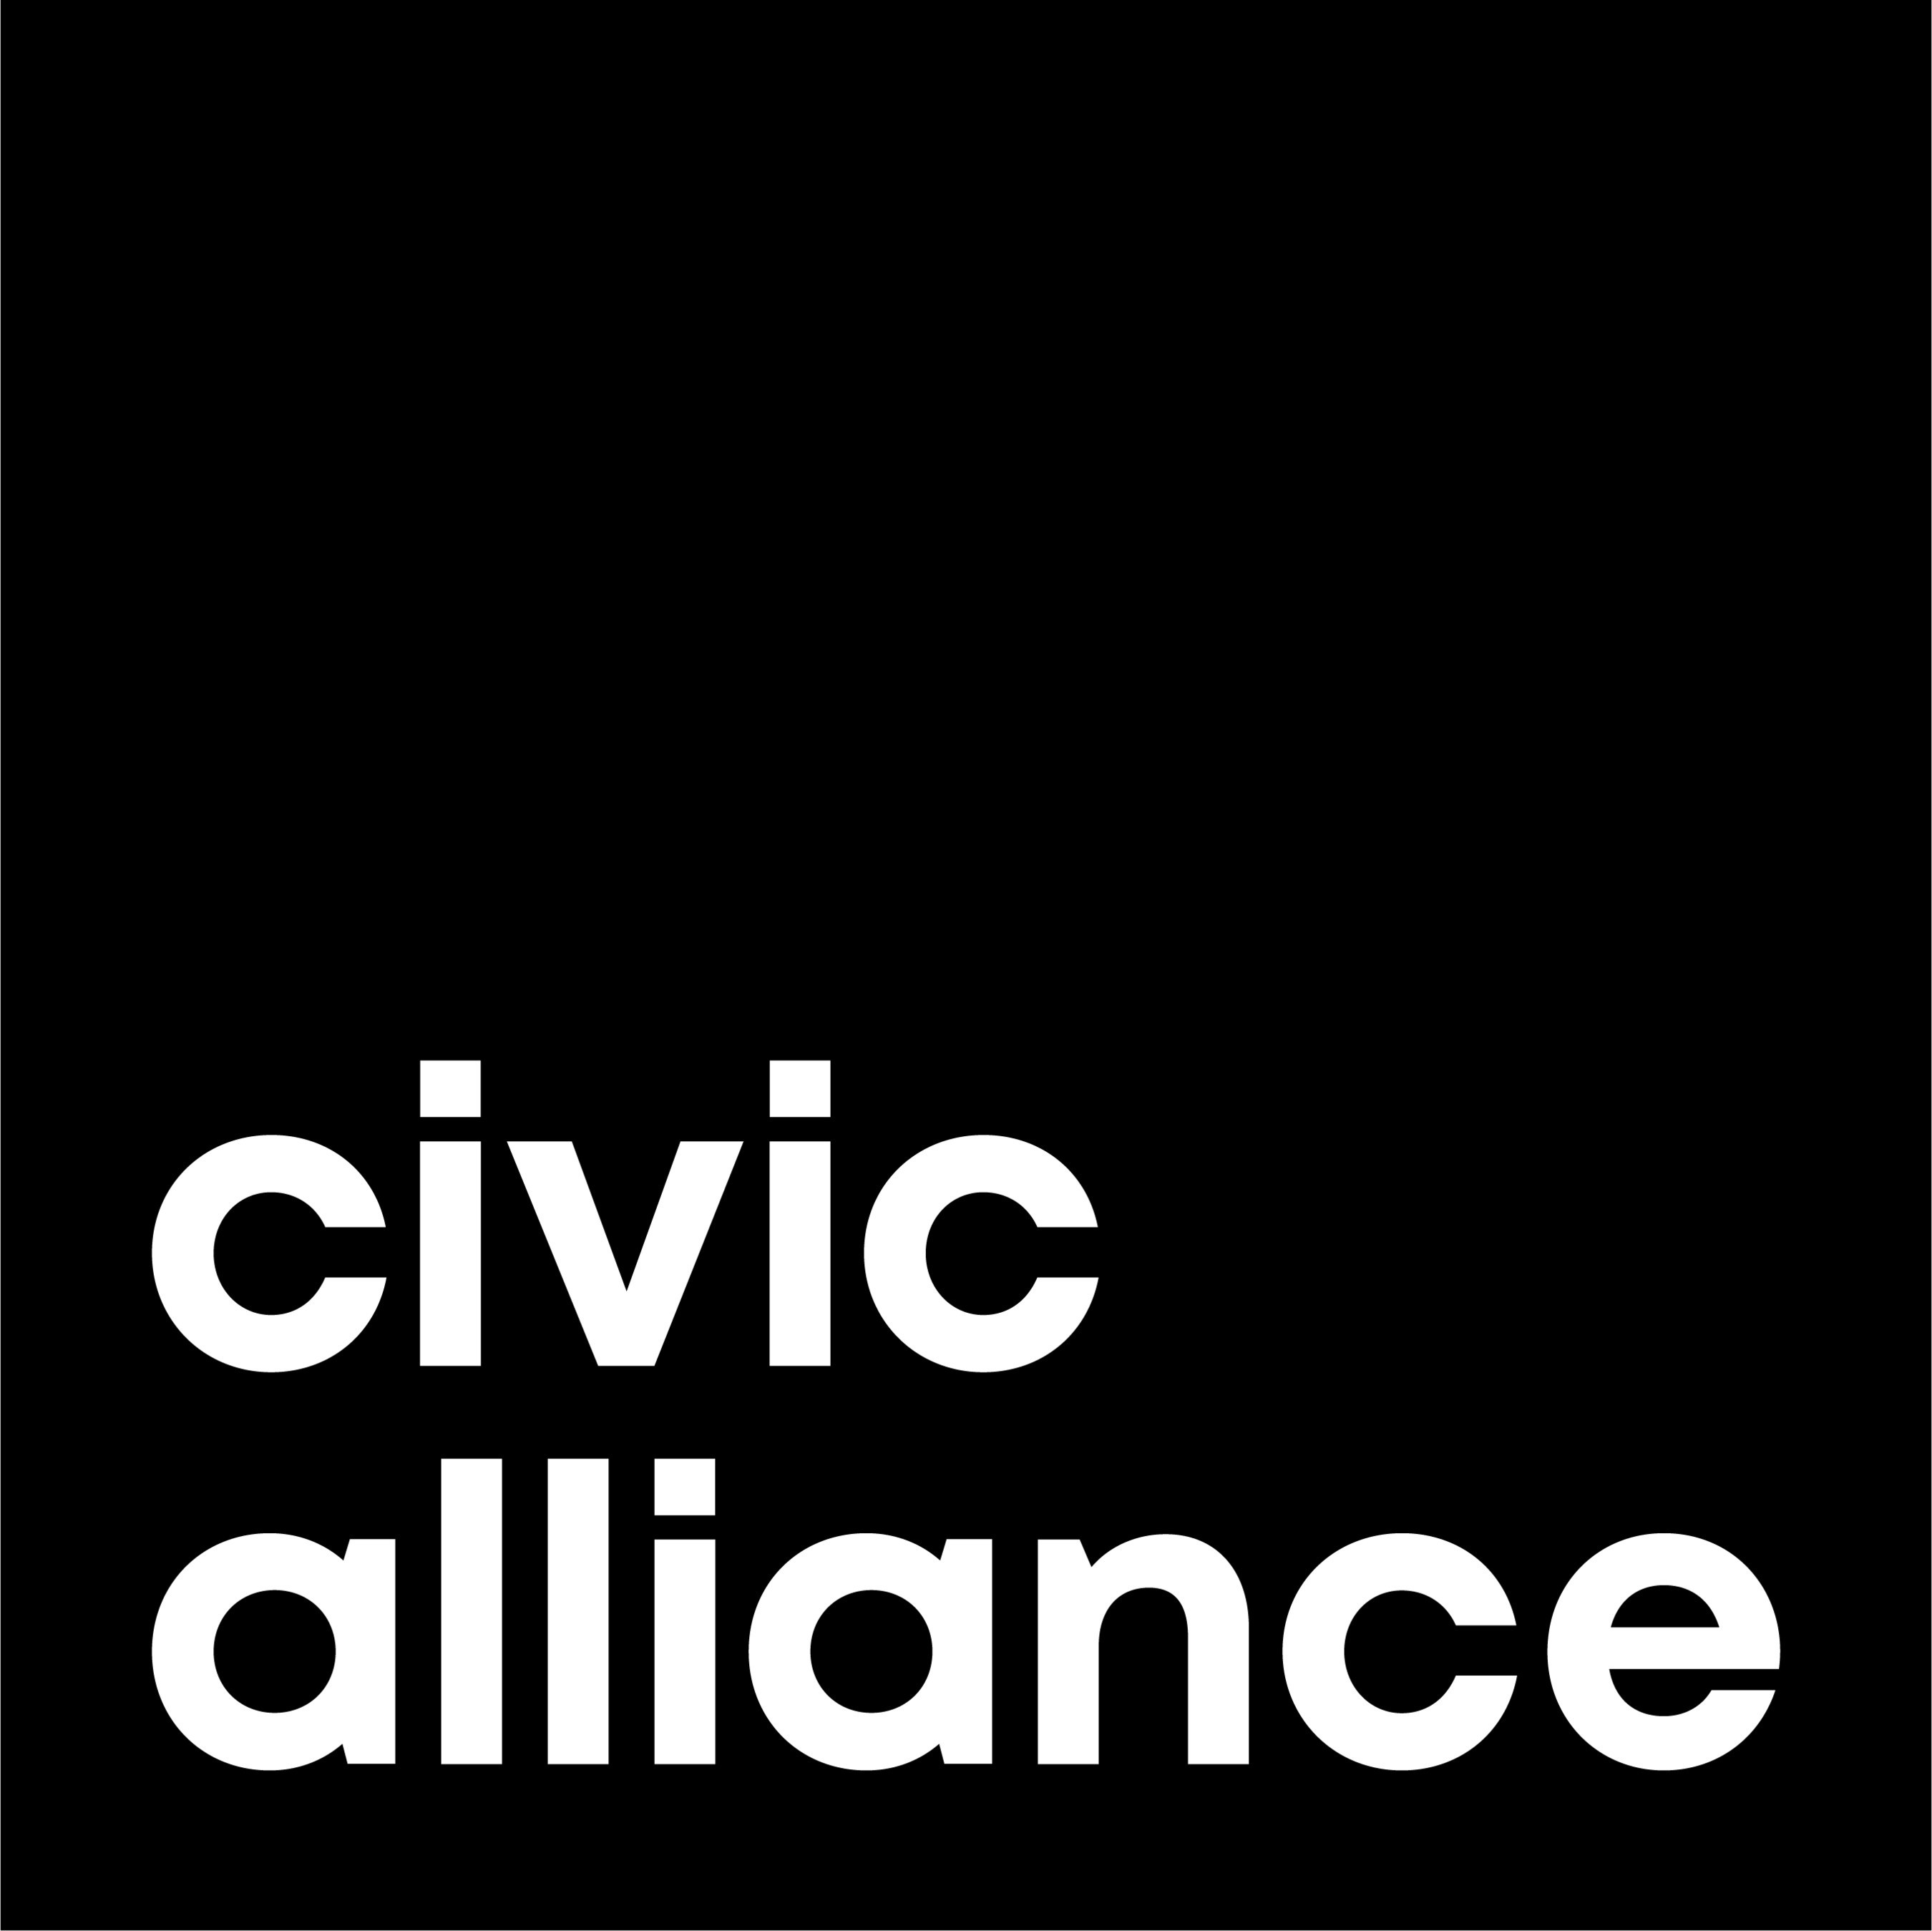 Dozens Of America S Leading Companies Join Forces To Form The Civic Alliance To Strengthen Nonpartisan Civic Participation